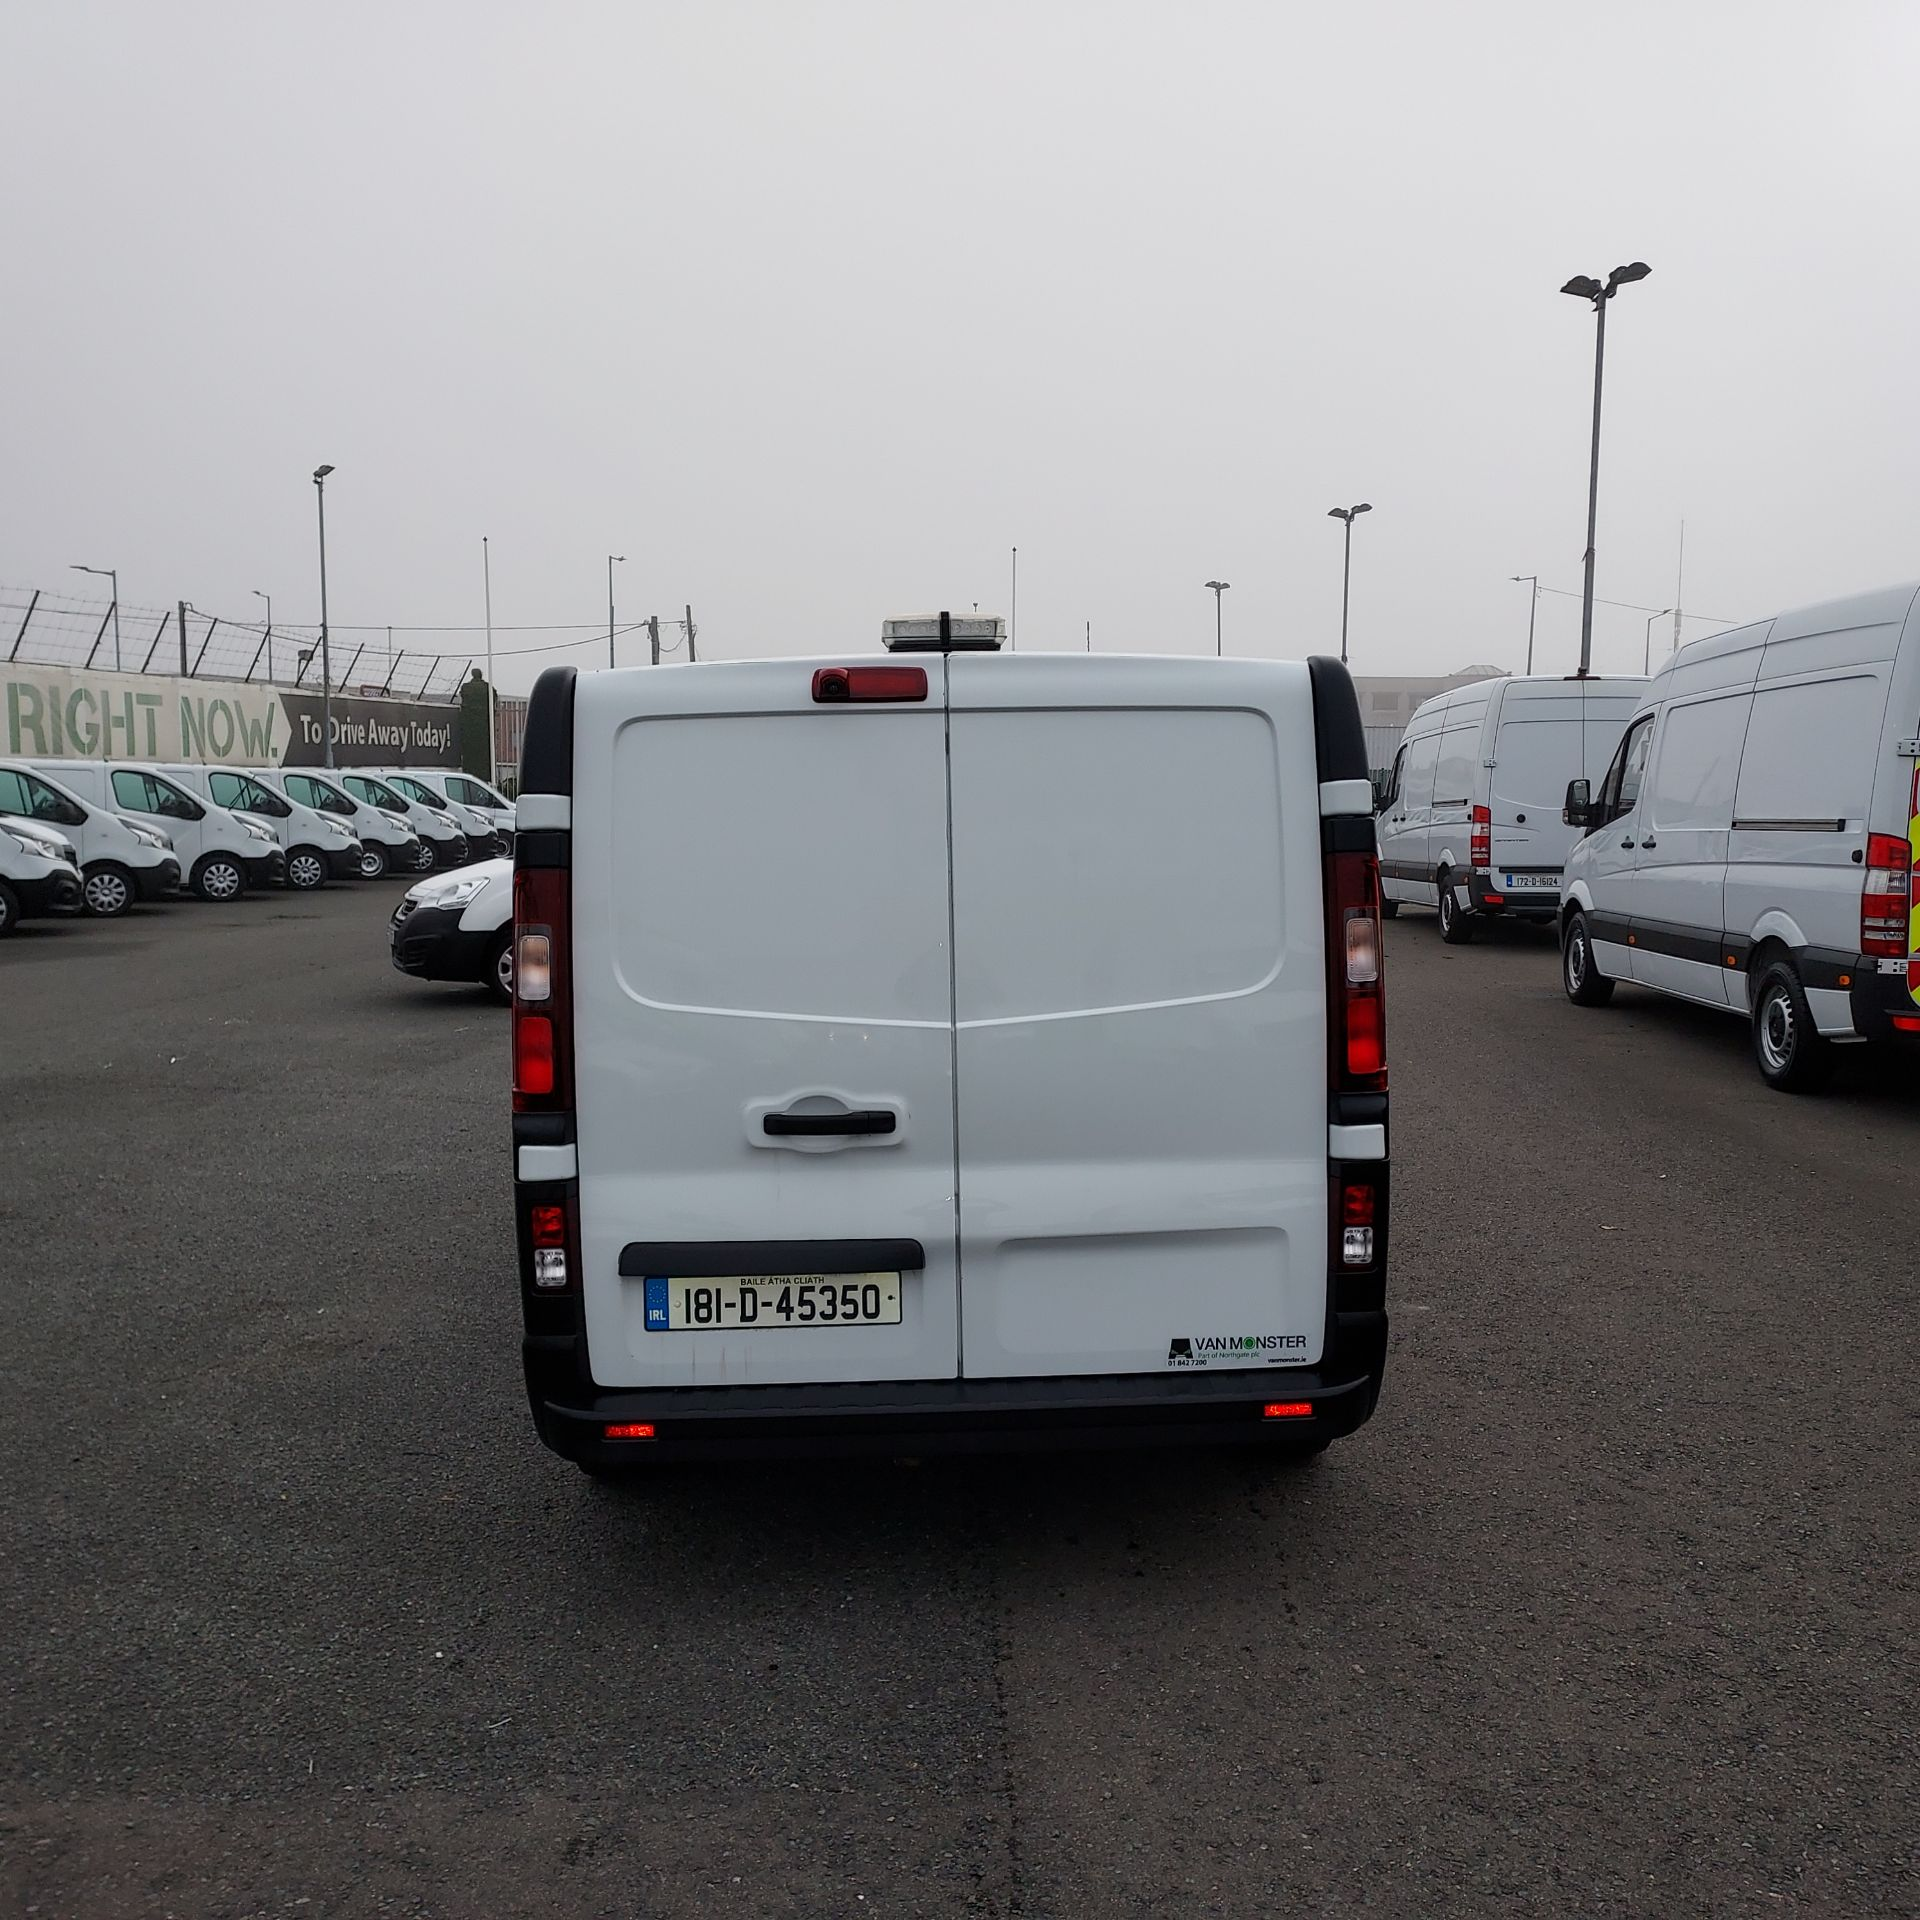 2018 Renault Trafic LL29 DCI 120 BUSINESS 3DR (181D45350) Image 5